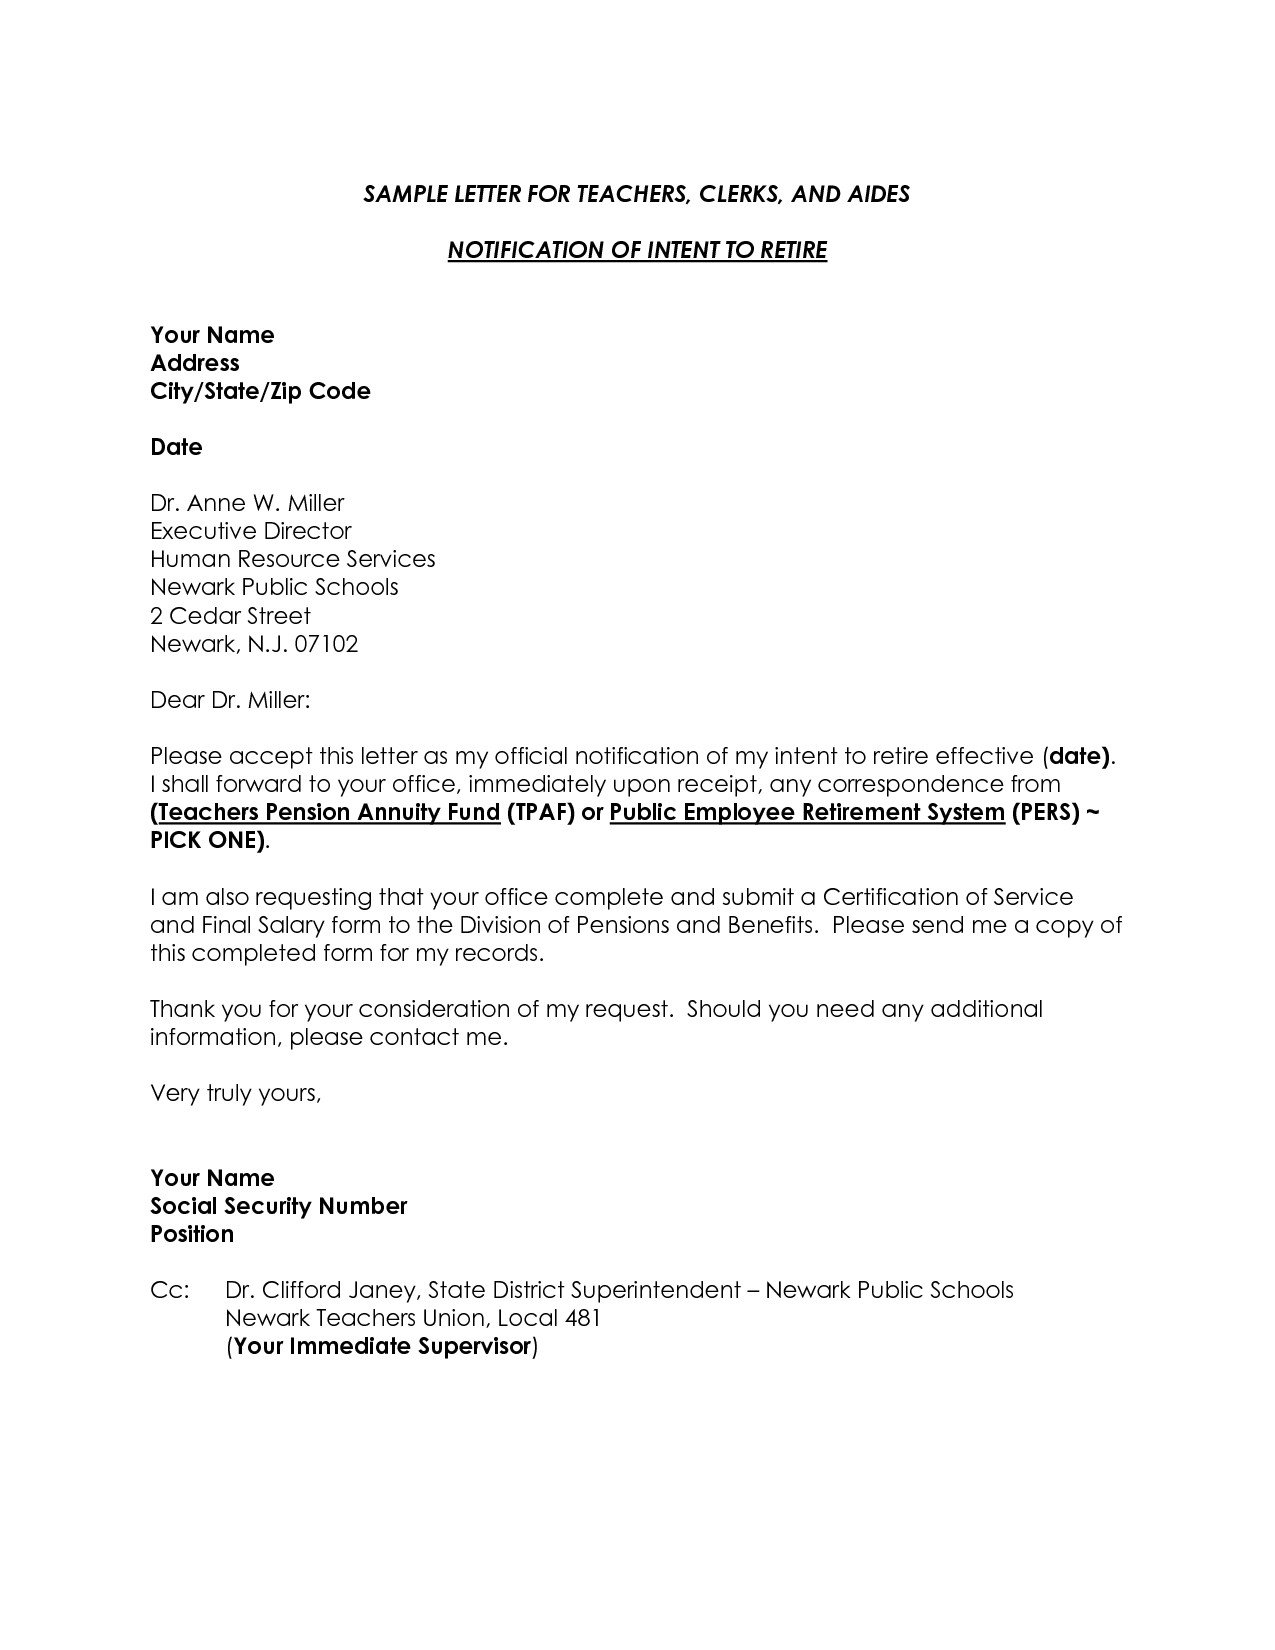 Letter Of Intent To Retire Template Samples Letter Template Collection